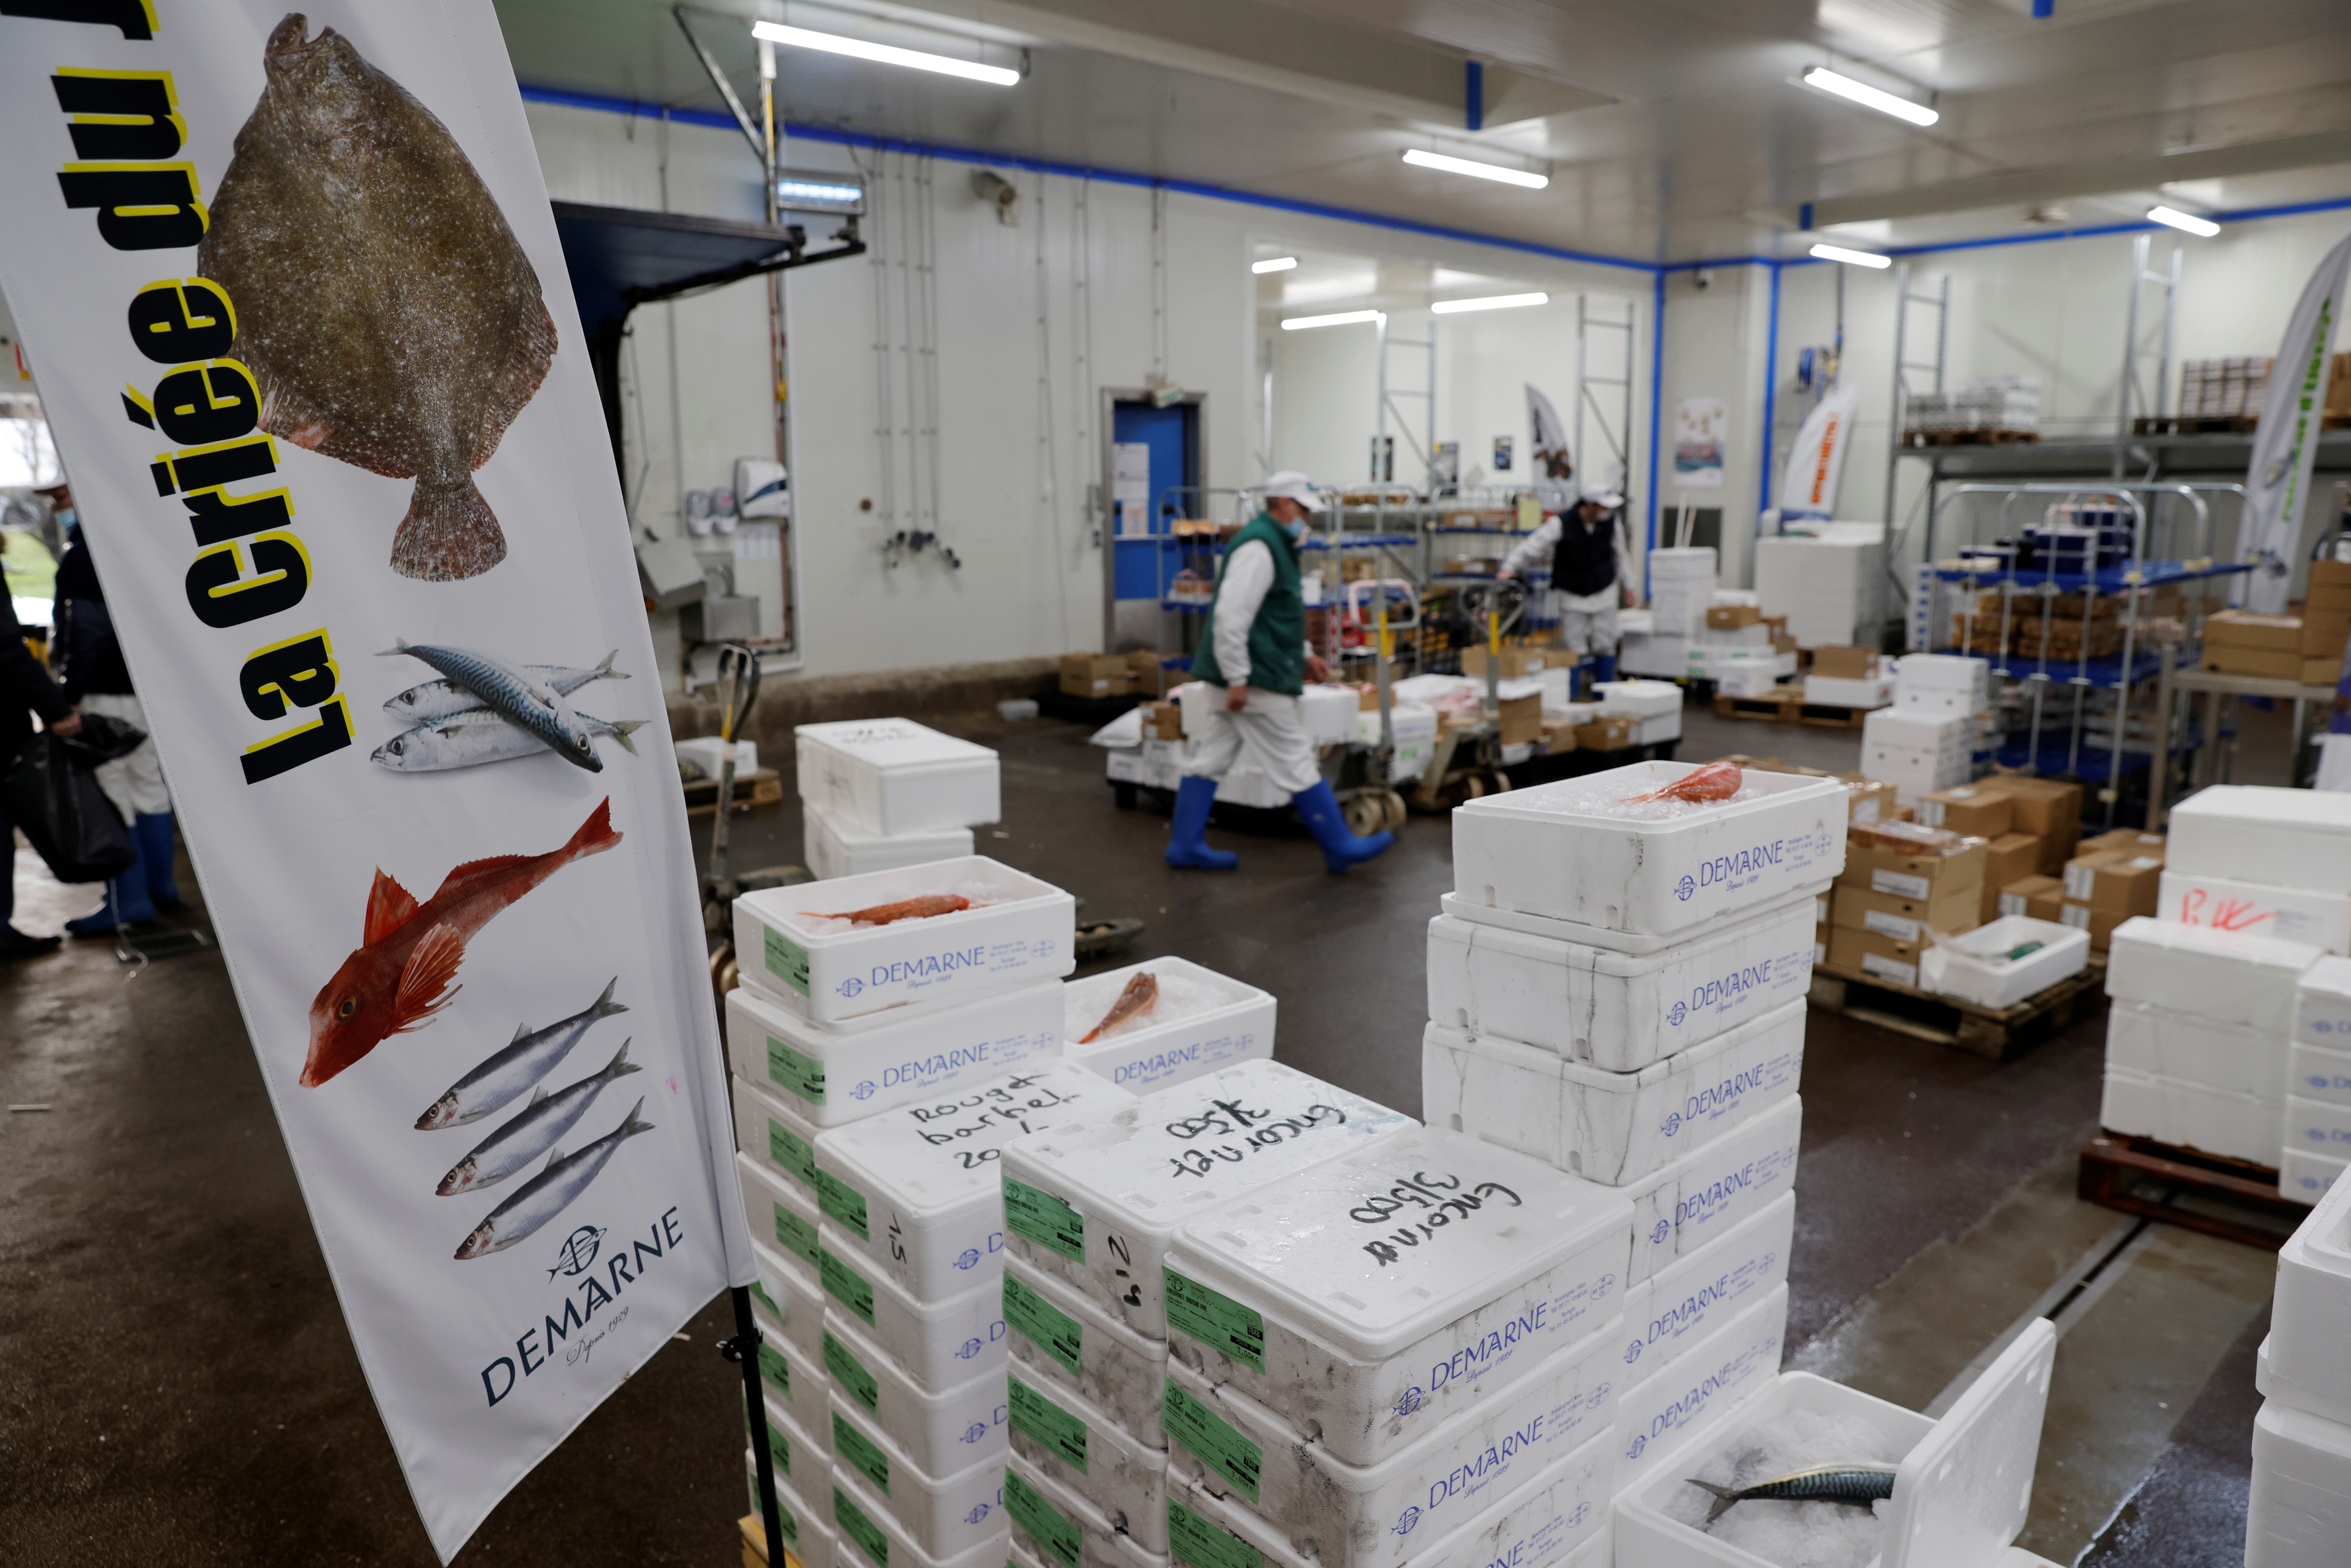 French workers move boxes in a fish processing plant in the port of Boulogne-sur-Mer, France, January 11, 2021. REUTERS/Pascal Rossignol